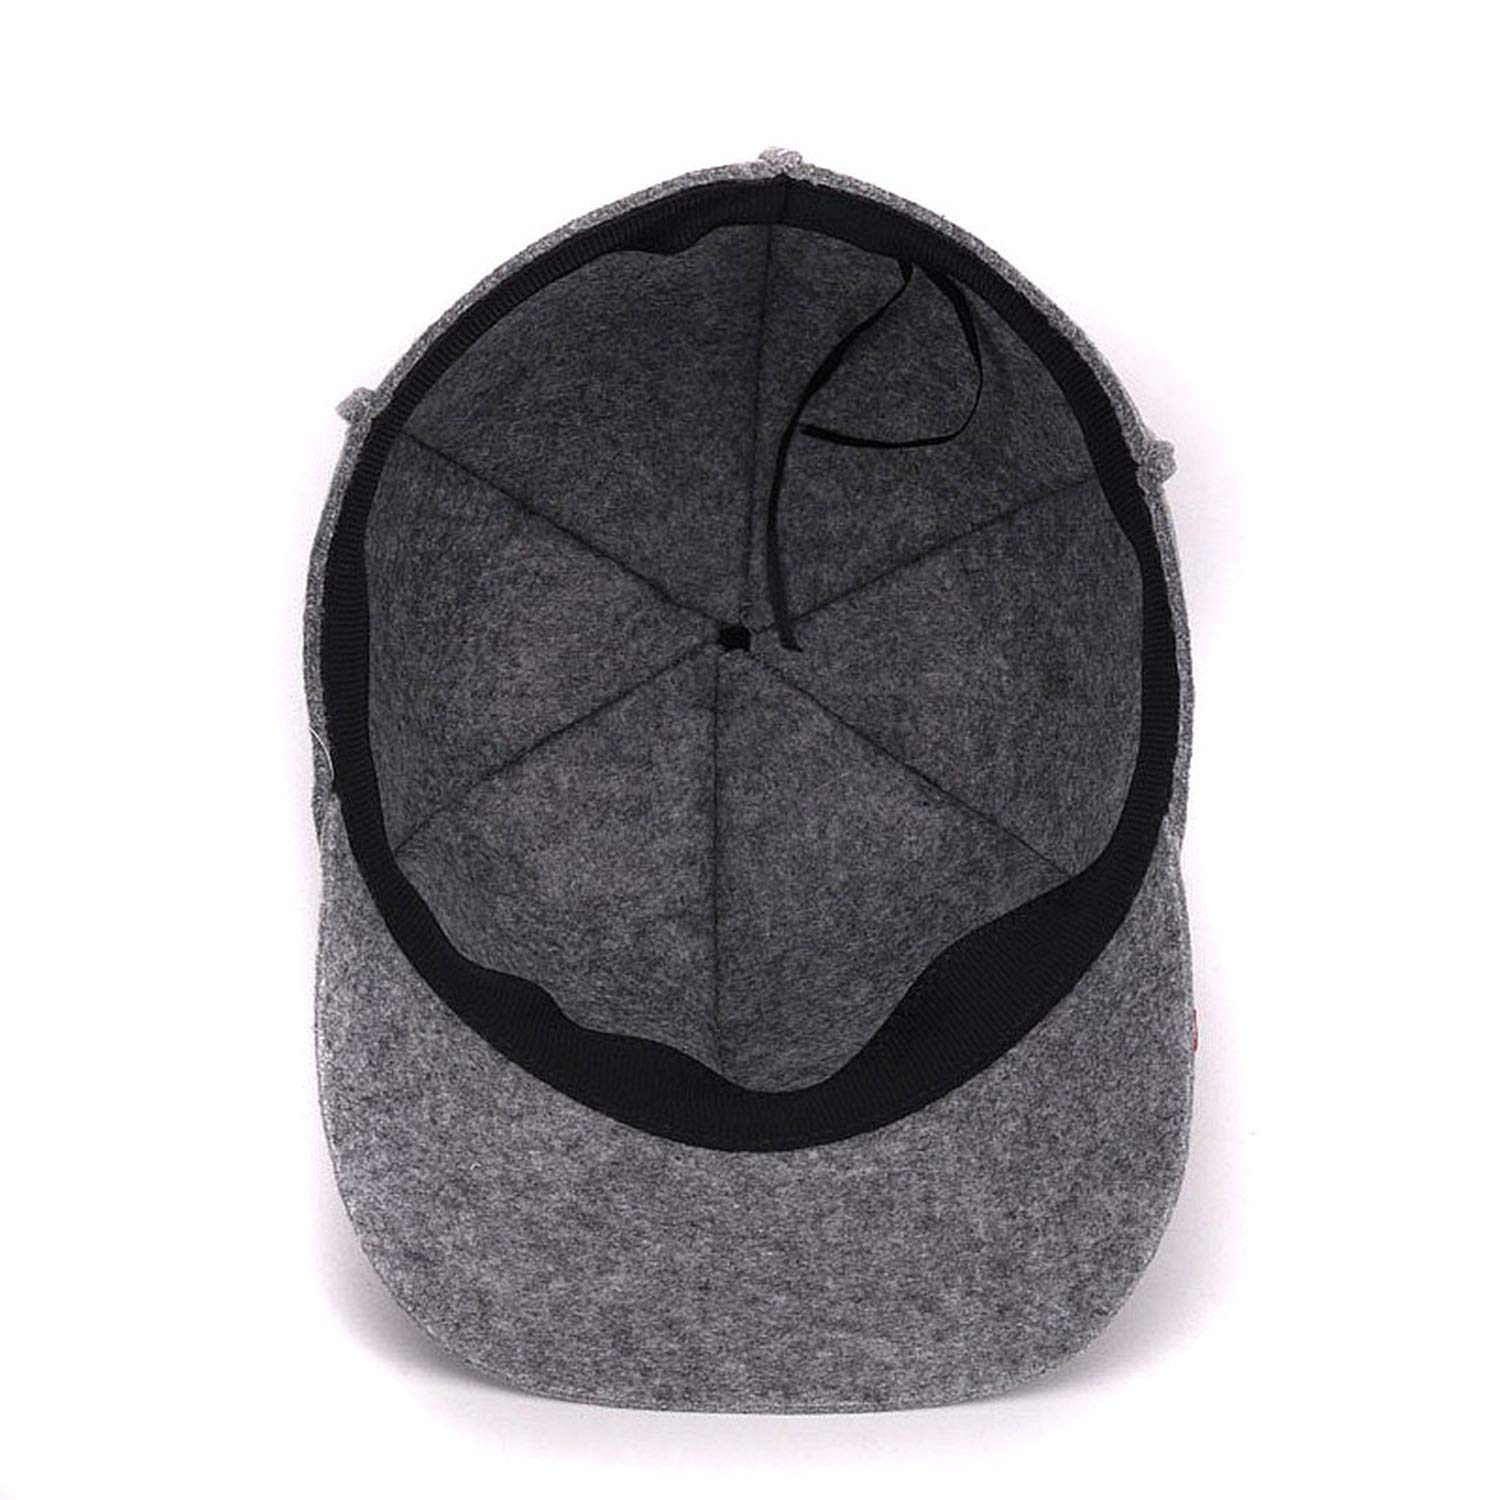 Eric Carl Winter Wool Baseball Cap for Women Outdoor Warm Hats Girls Solid Casquette Woolen Cap